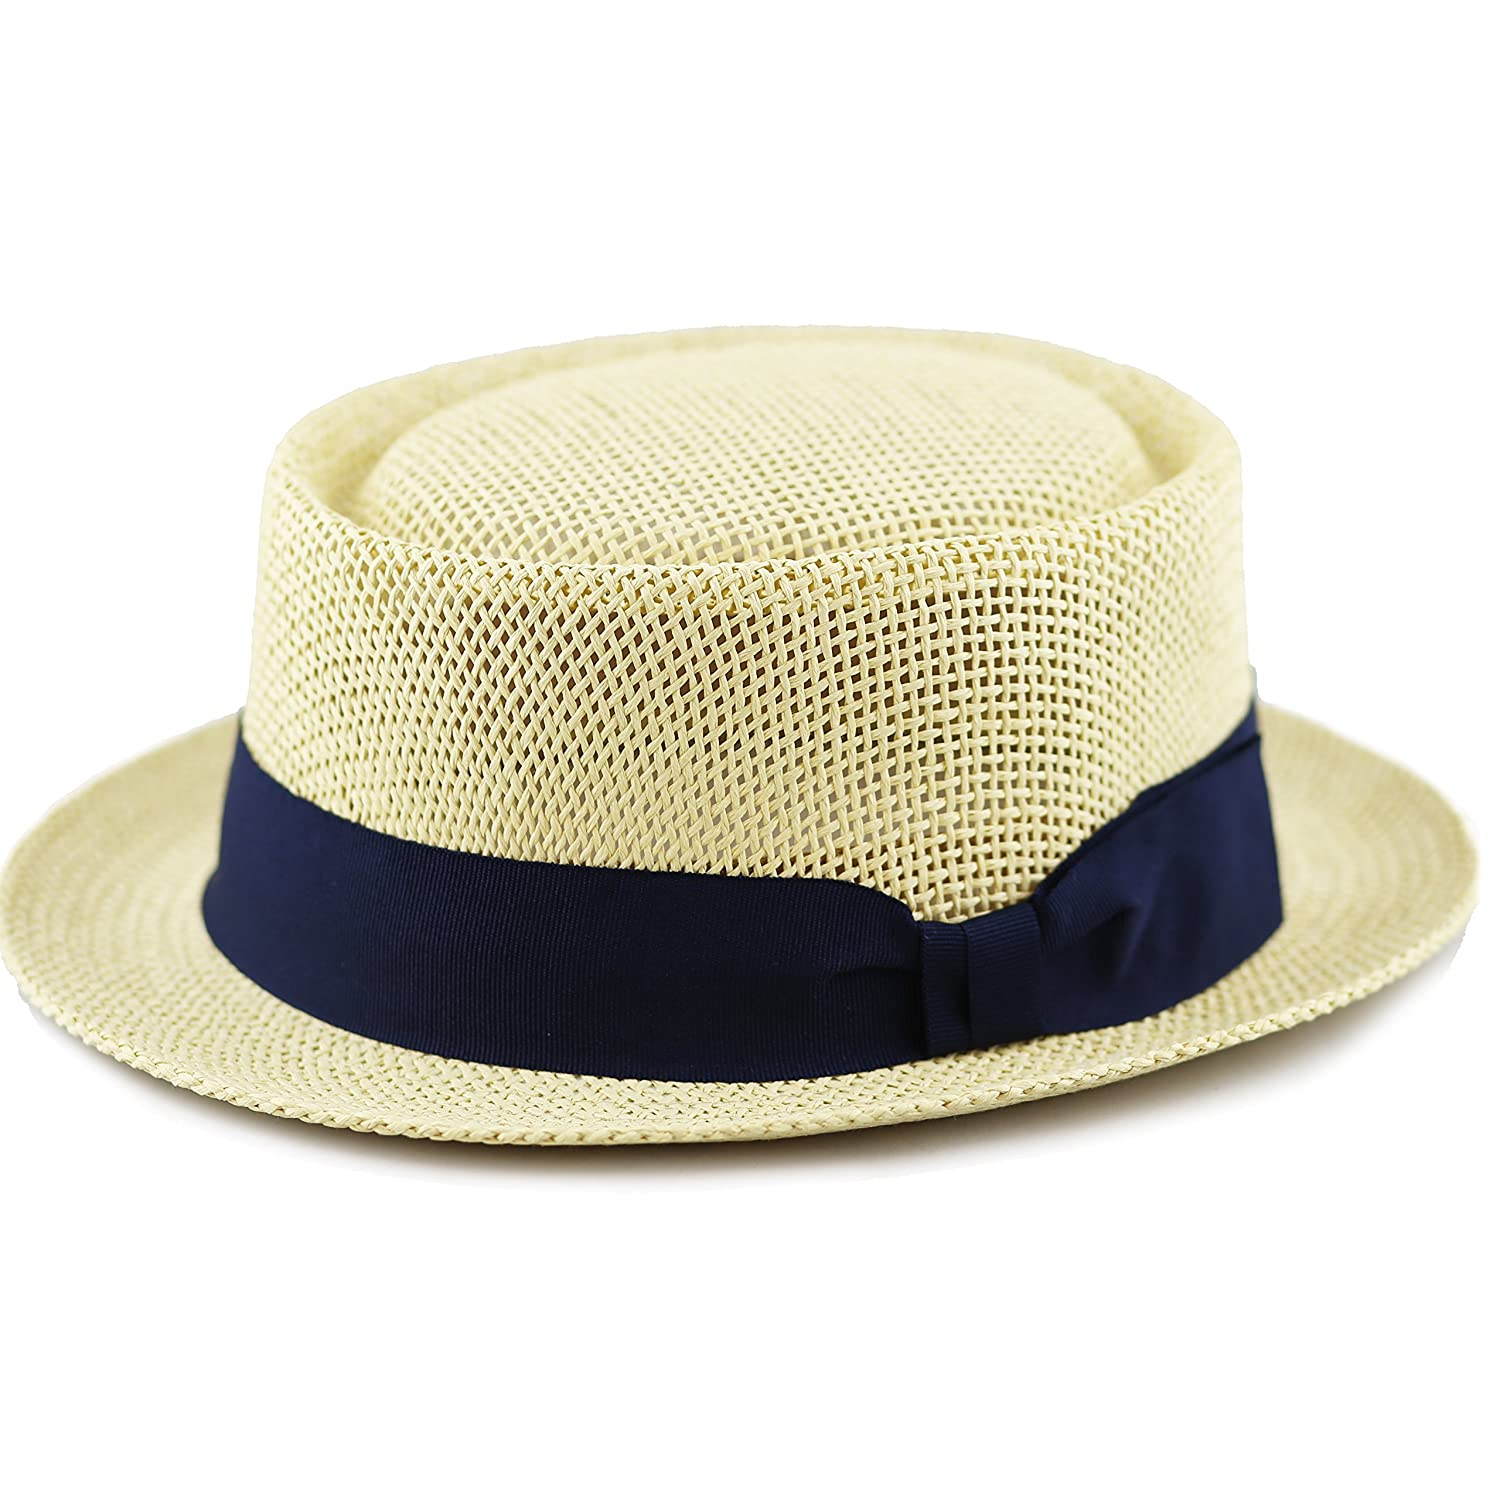 1940s Style Mens Hats The Hat Depot Unisex Summer Paper Straw Short Brim Porkpie Hat $14.99 AT vintagedancer.com